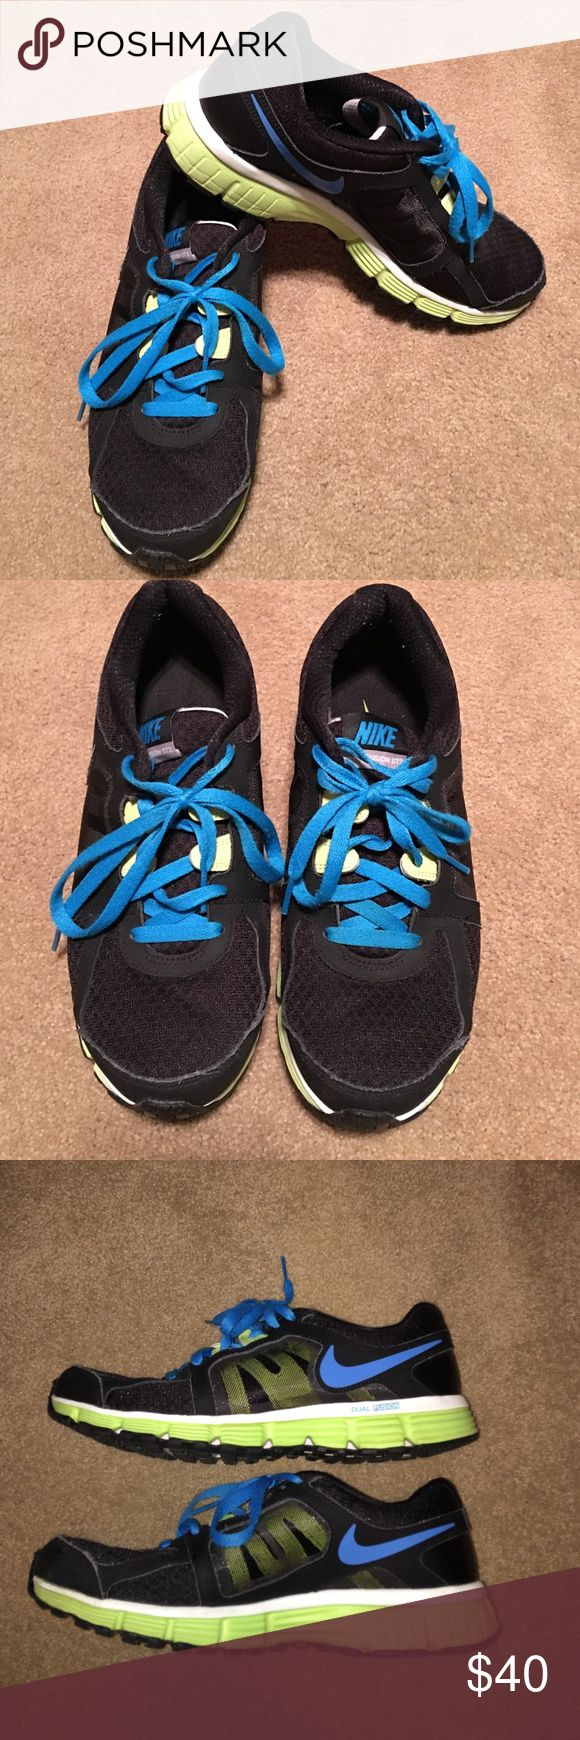 Nike Dual Fusion ST 2. Women's size 9.5 Nike Dual Fusion ST2. Black, turquoise and lime green. Nike waffle outsole. Great condition. Very clean. Nike Shoes Athletic Shoes